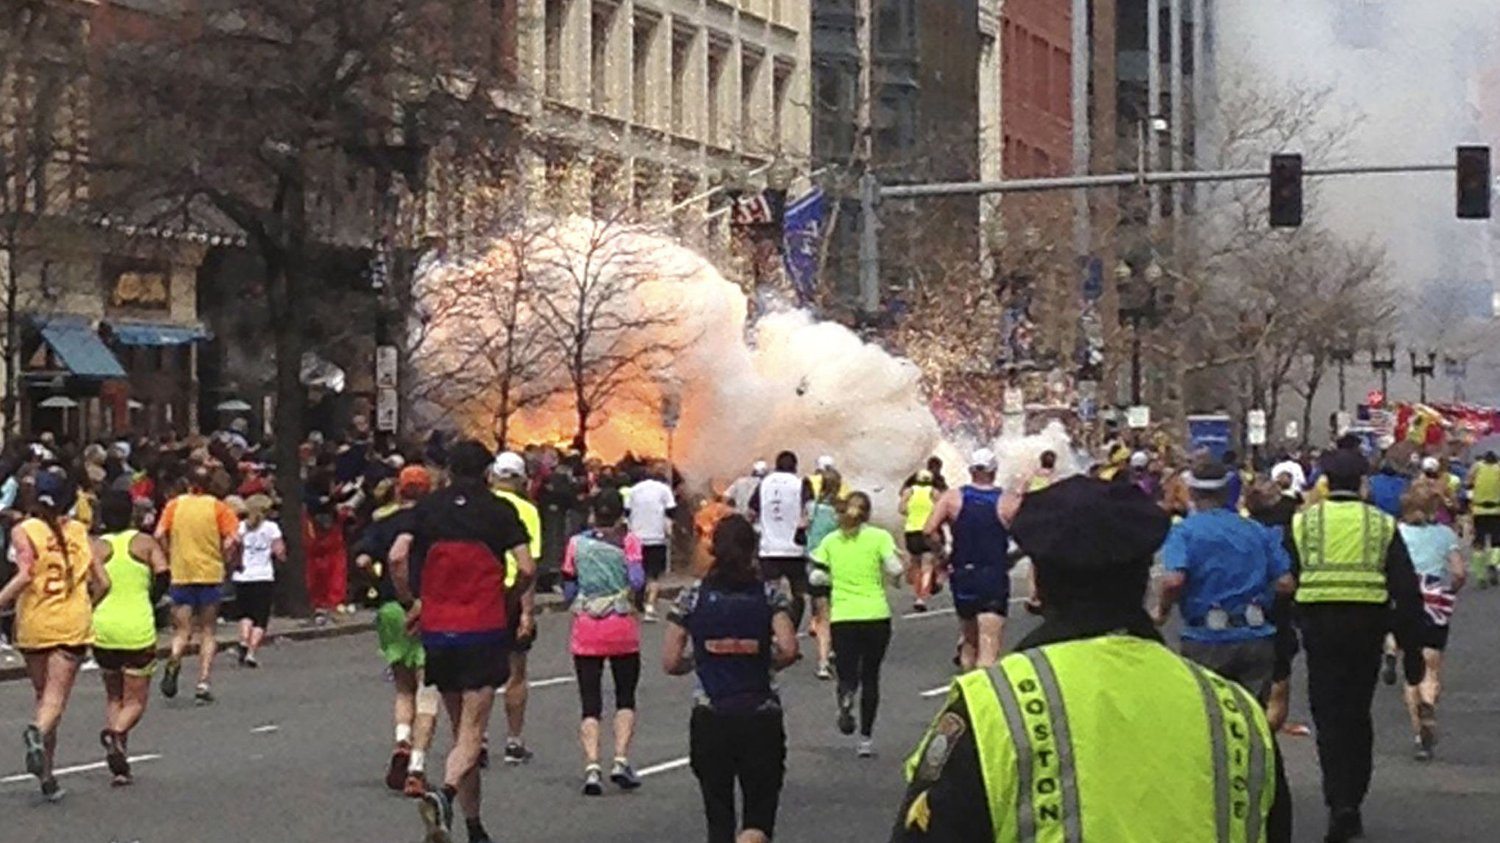 SMALT: 15. april 2013 gikk en bombe av nær mållinjen under Boston Marathon.